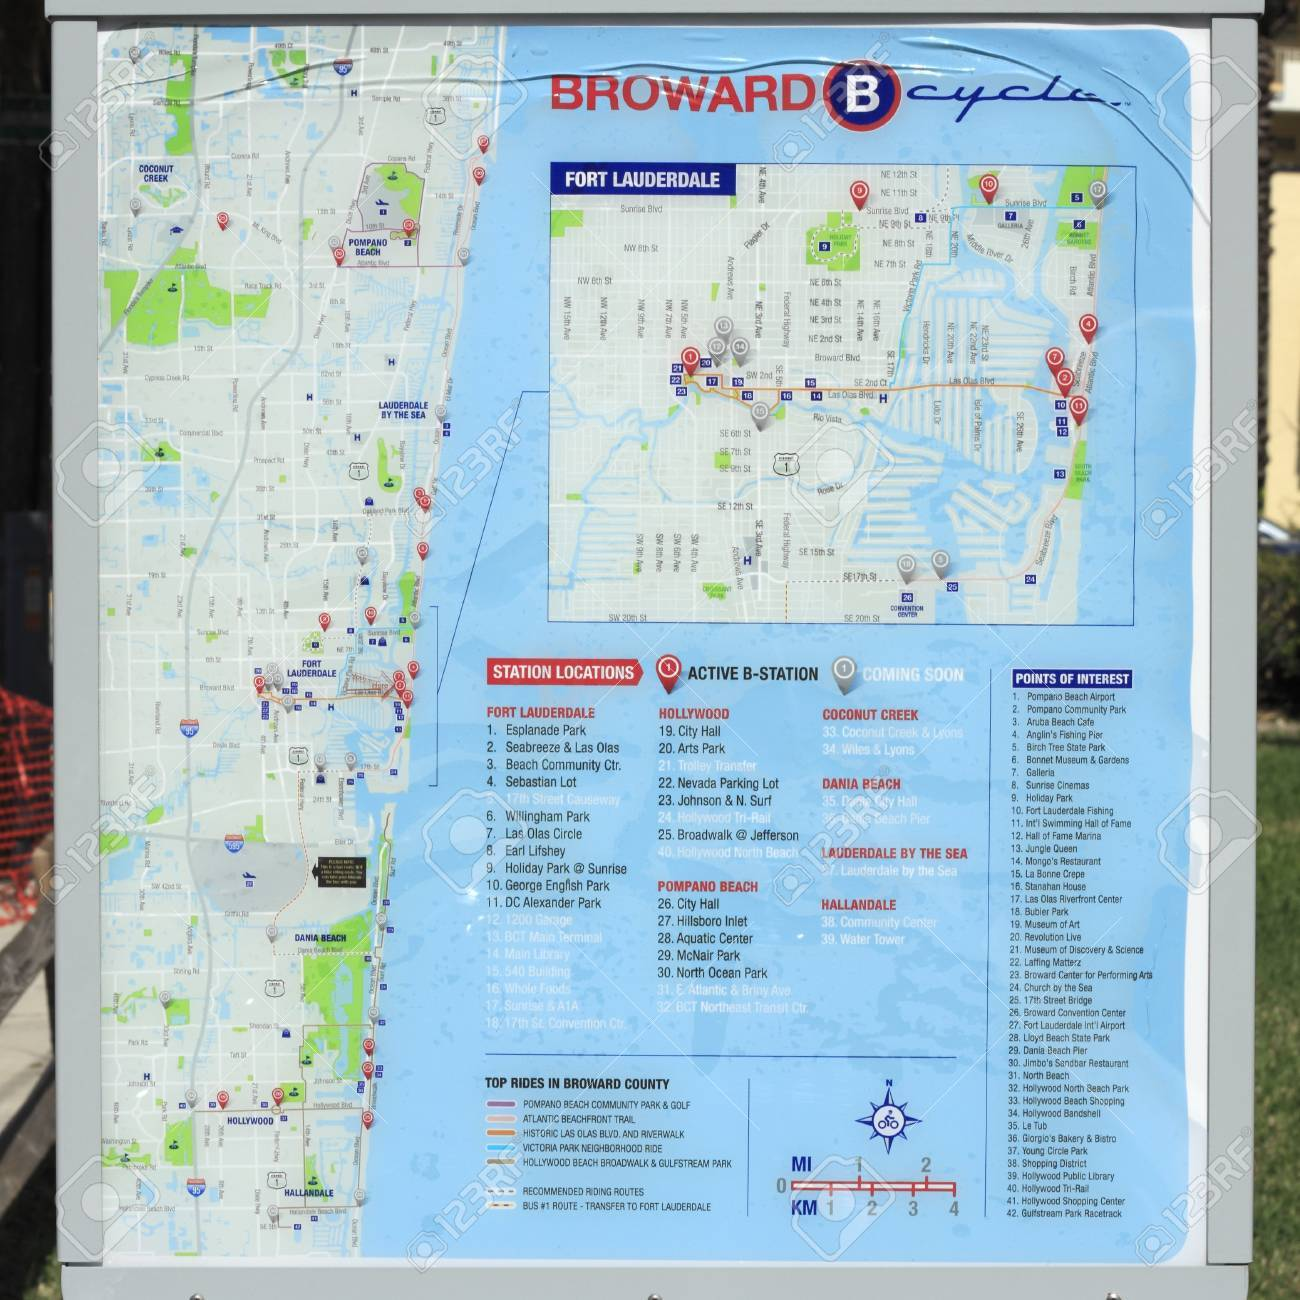 Map Of Fort Lauderdale Florida.Fort Lauderdale Florida February 3 2013 Map Of Current And